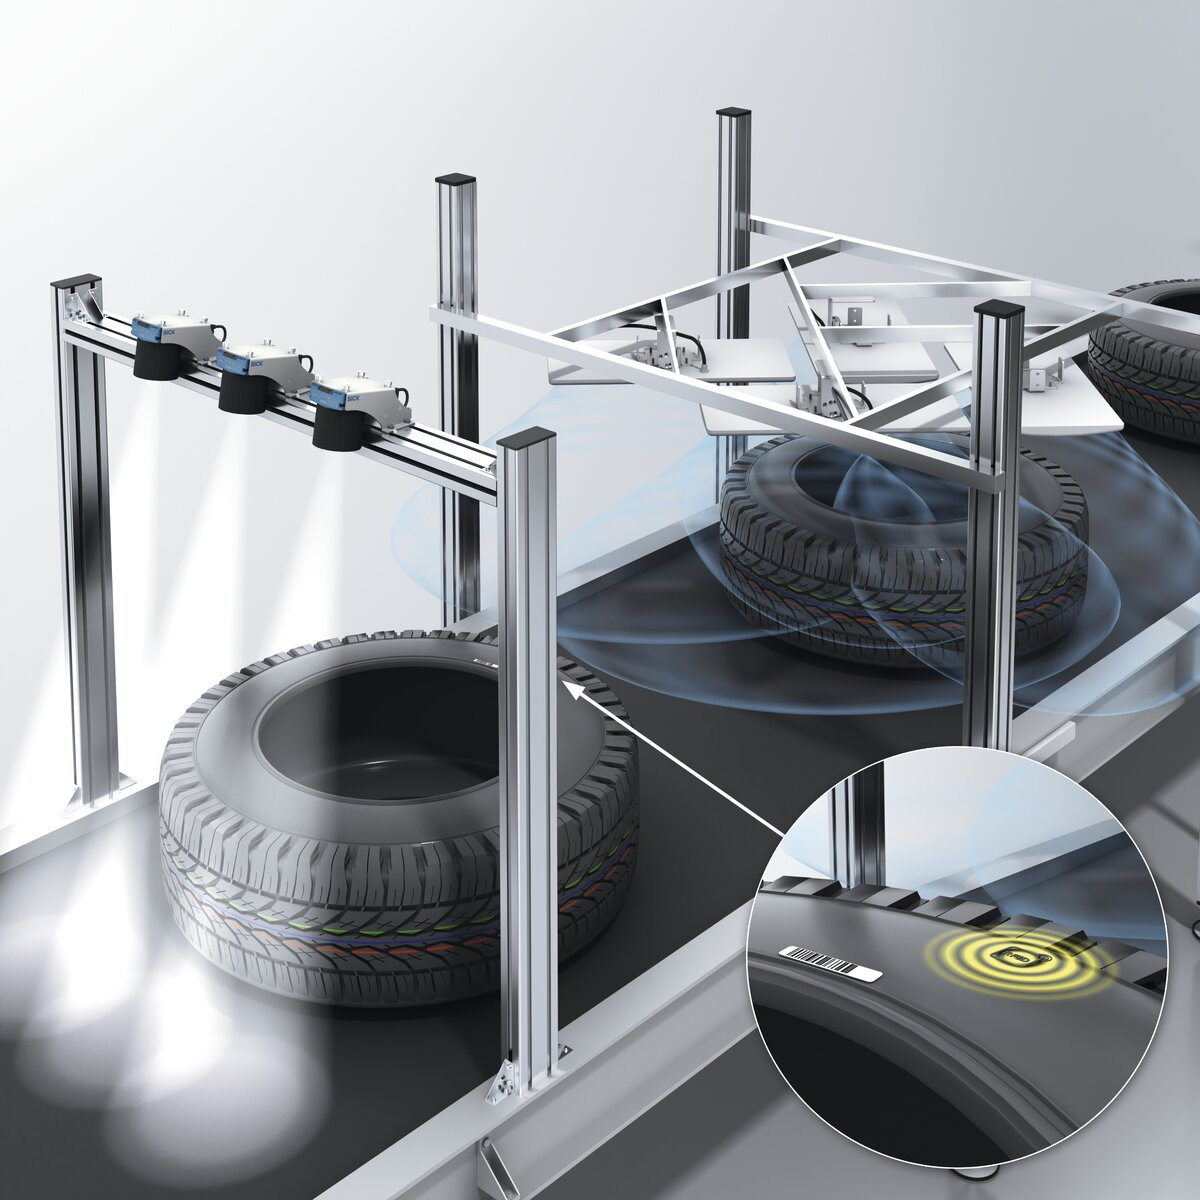 tire manufacturing, Cutting-Edge Track and Trace Technology for Tire Production